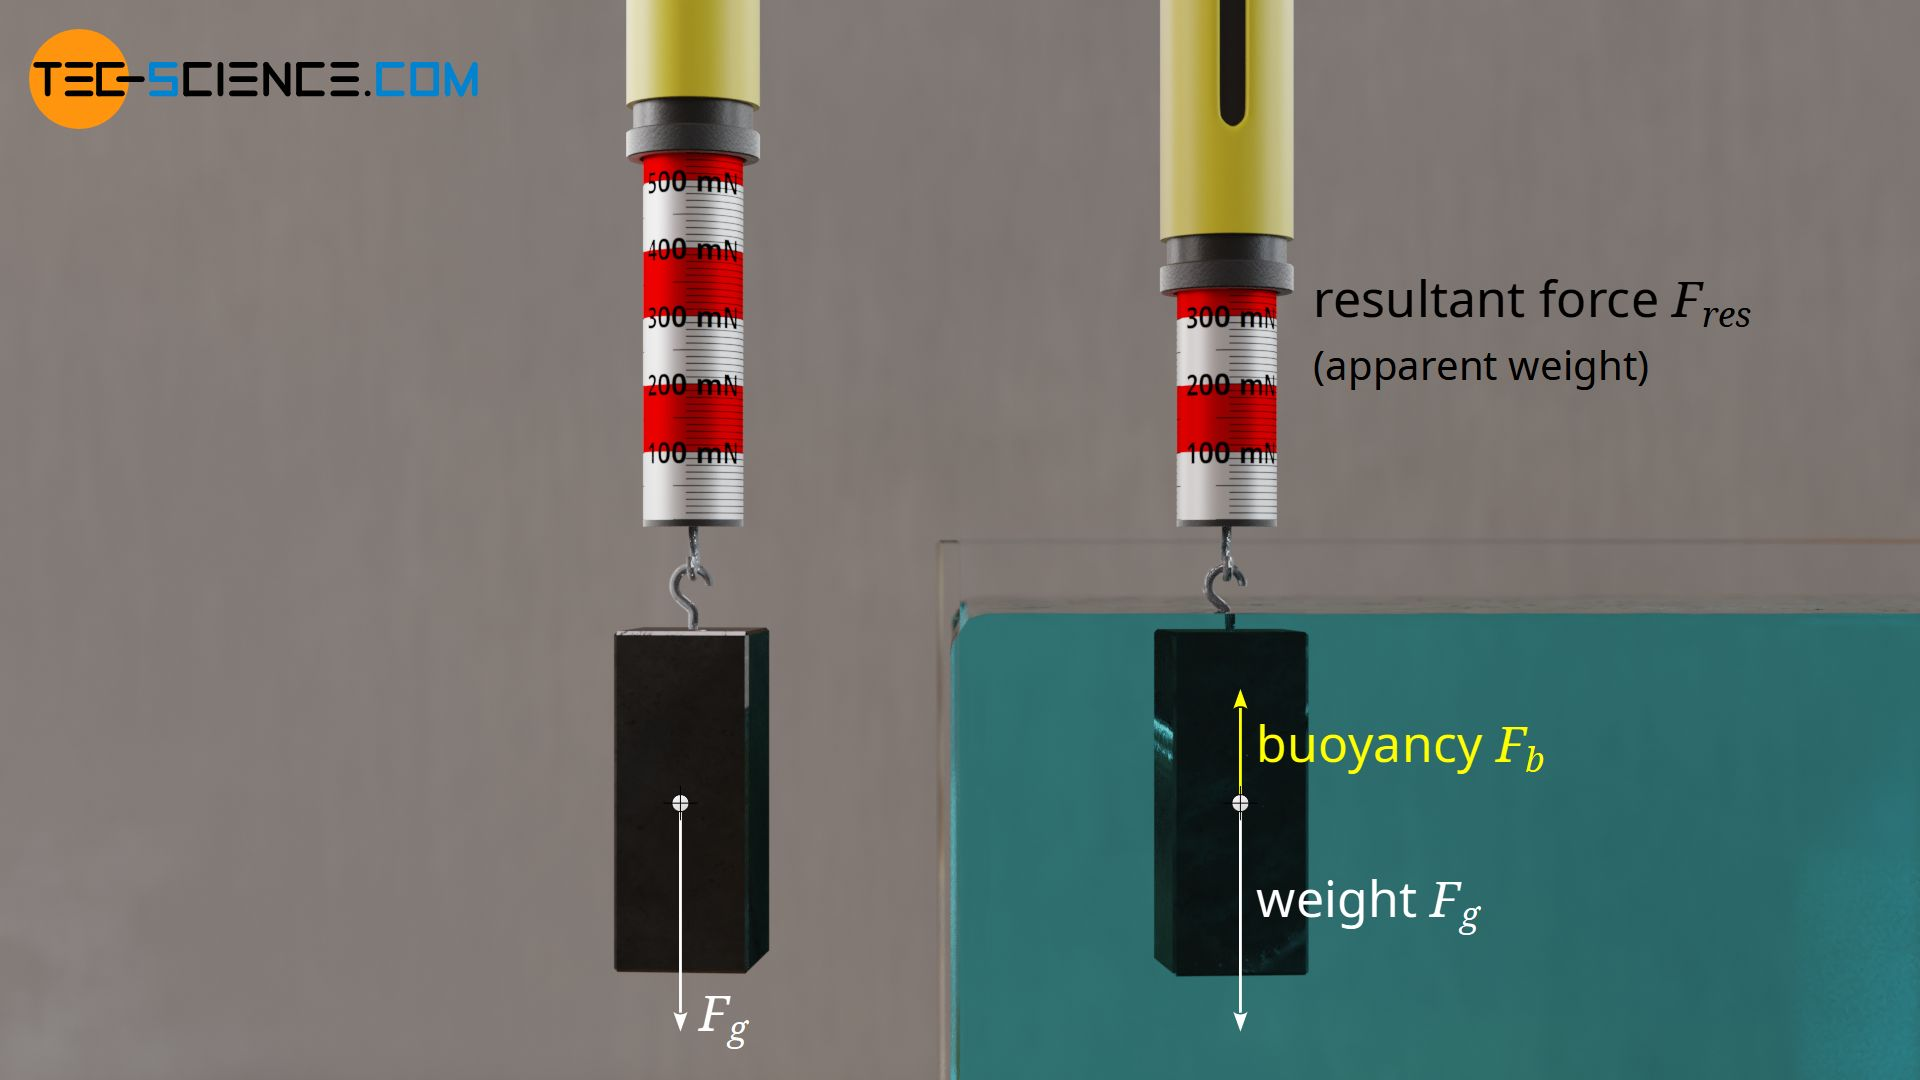 Apparently lighter weight when a body is immersed in a liquid as a result of buoyancy